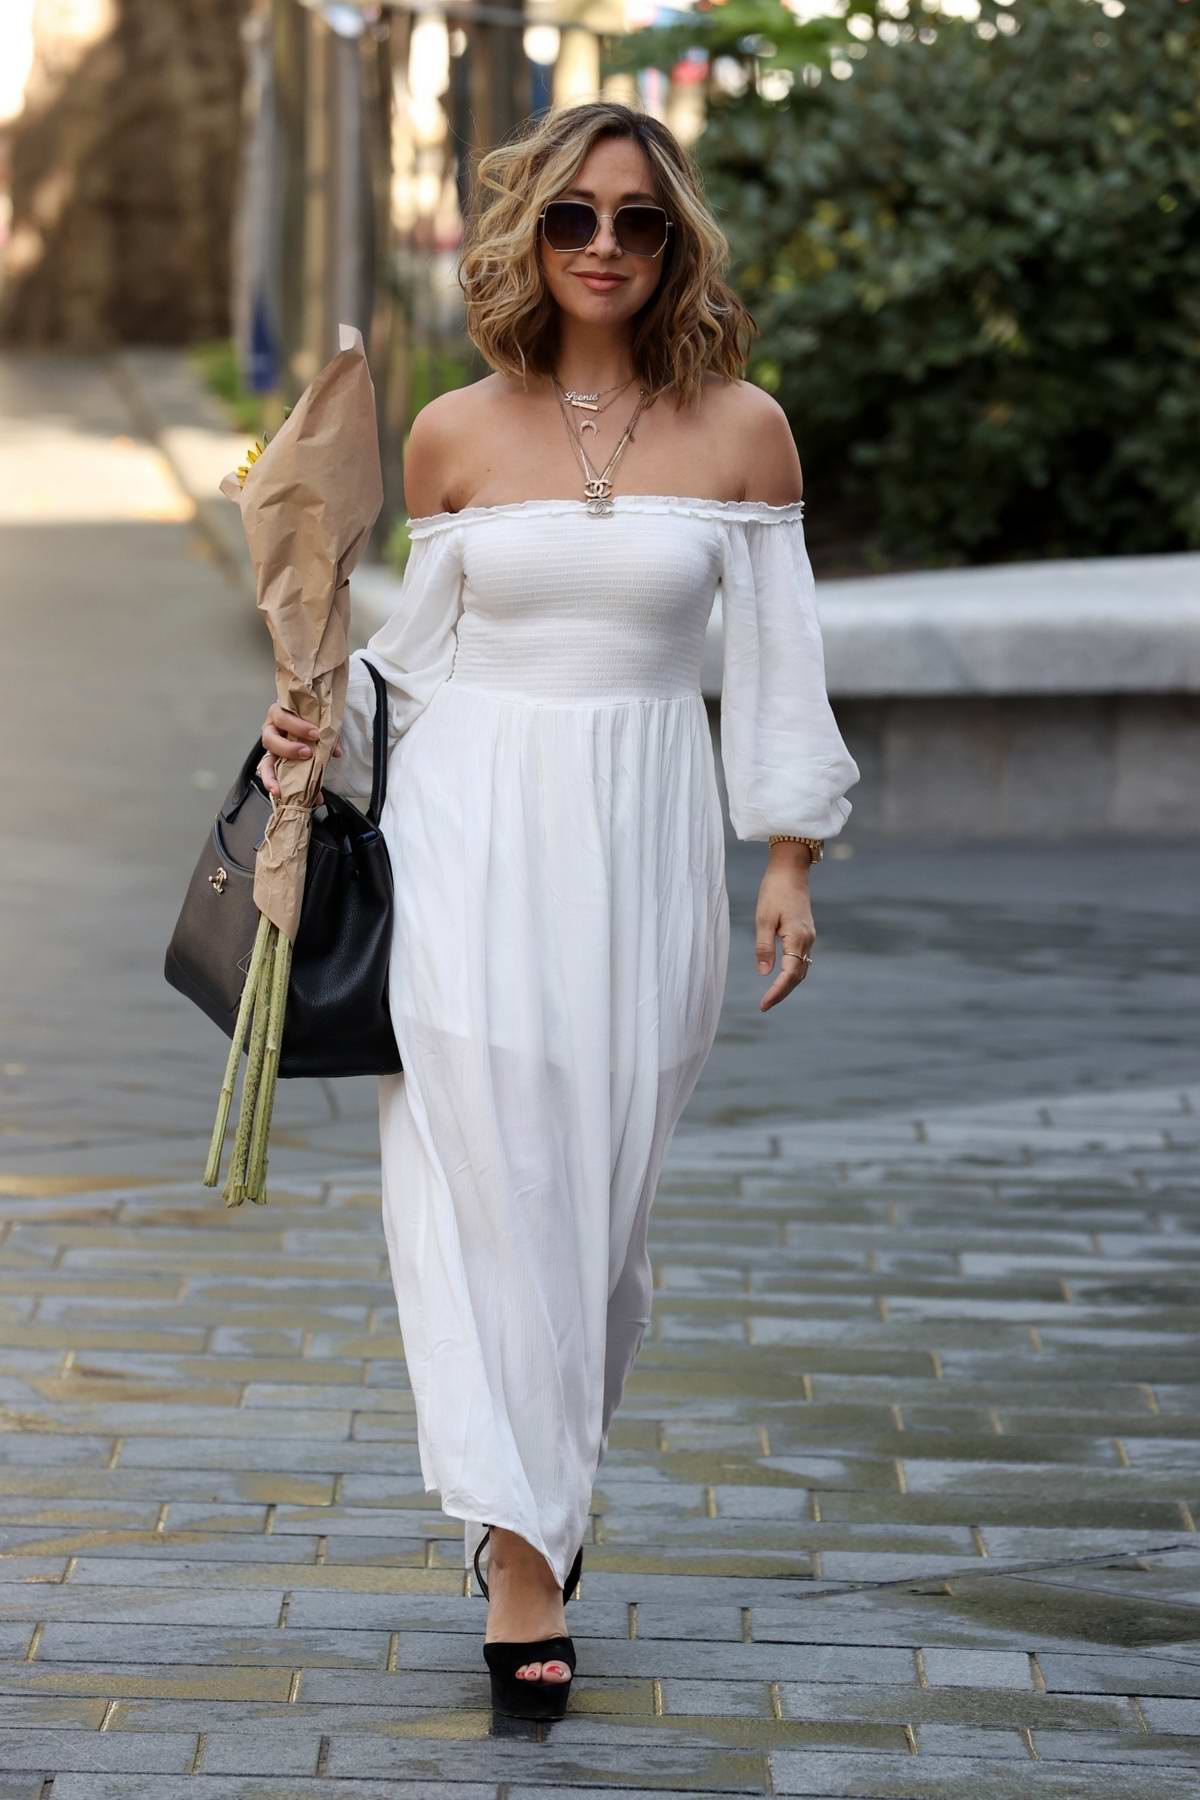 Myleene Klass looks chic in white as she arrives at the Smooth Radio Studios in London, UK